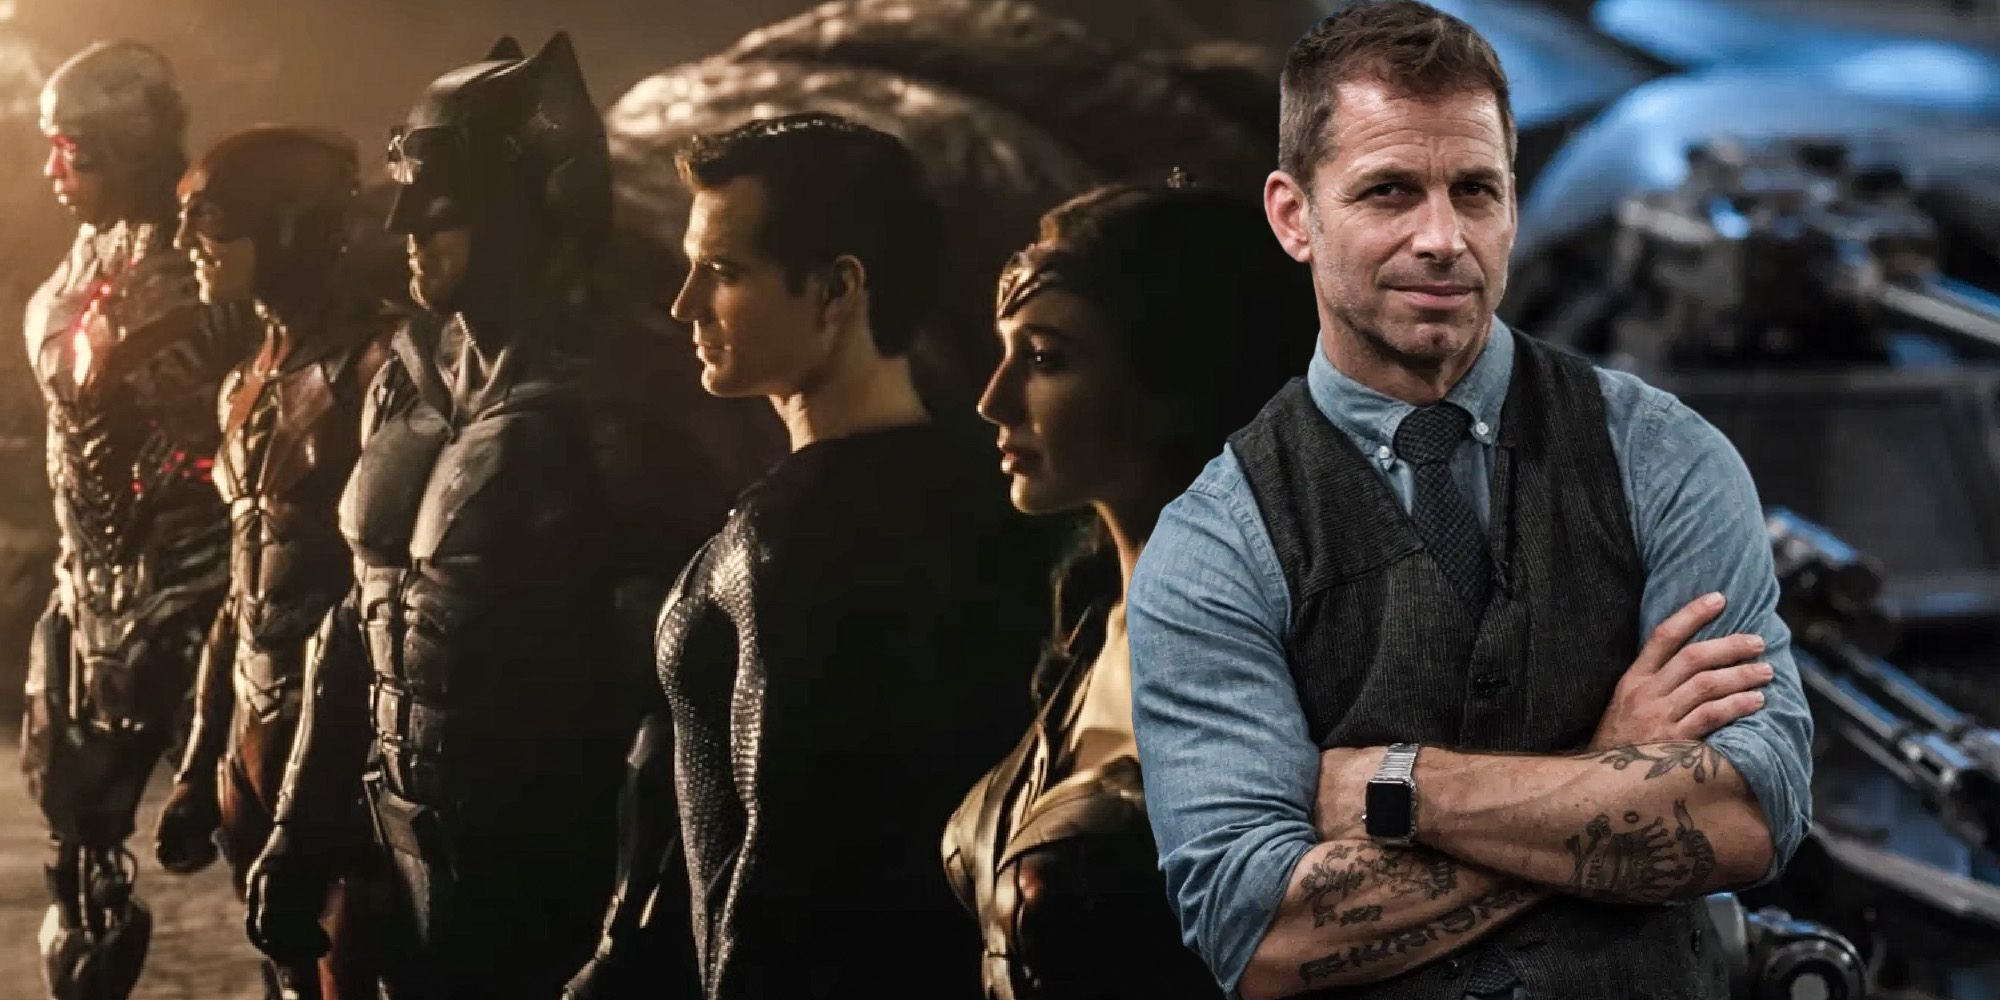 Justice League Snyder Cut Drops Two Warner Bros. Producers